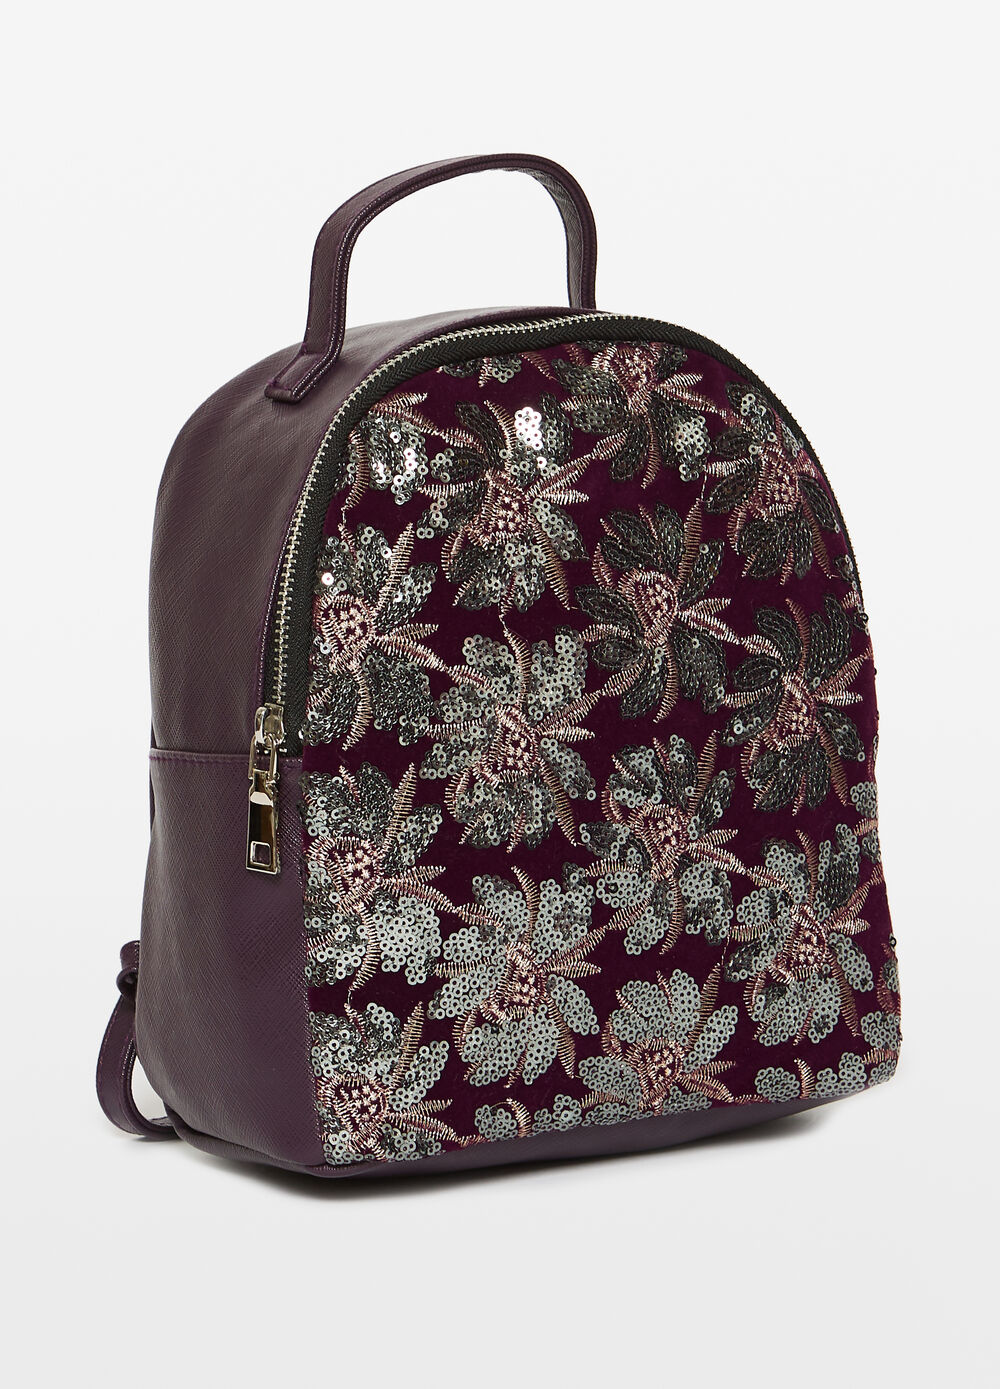 Backpack with floral embroidery and sequins